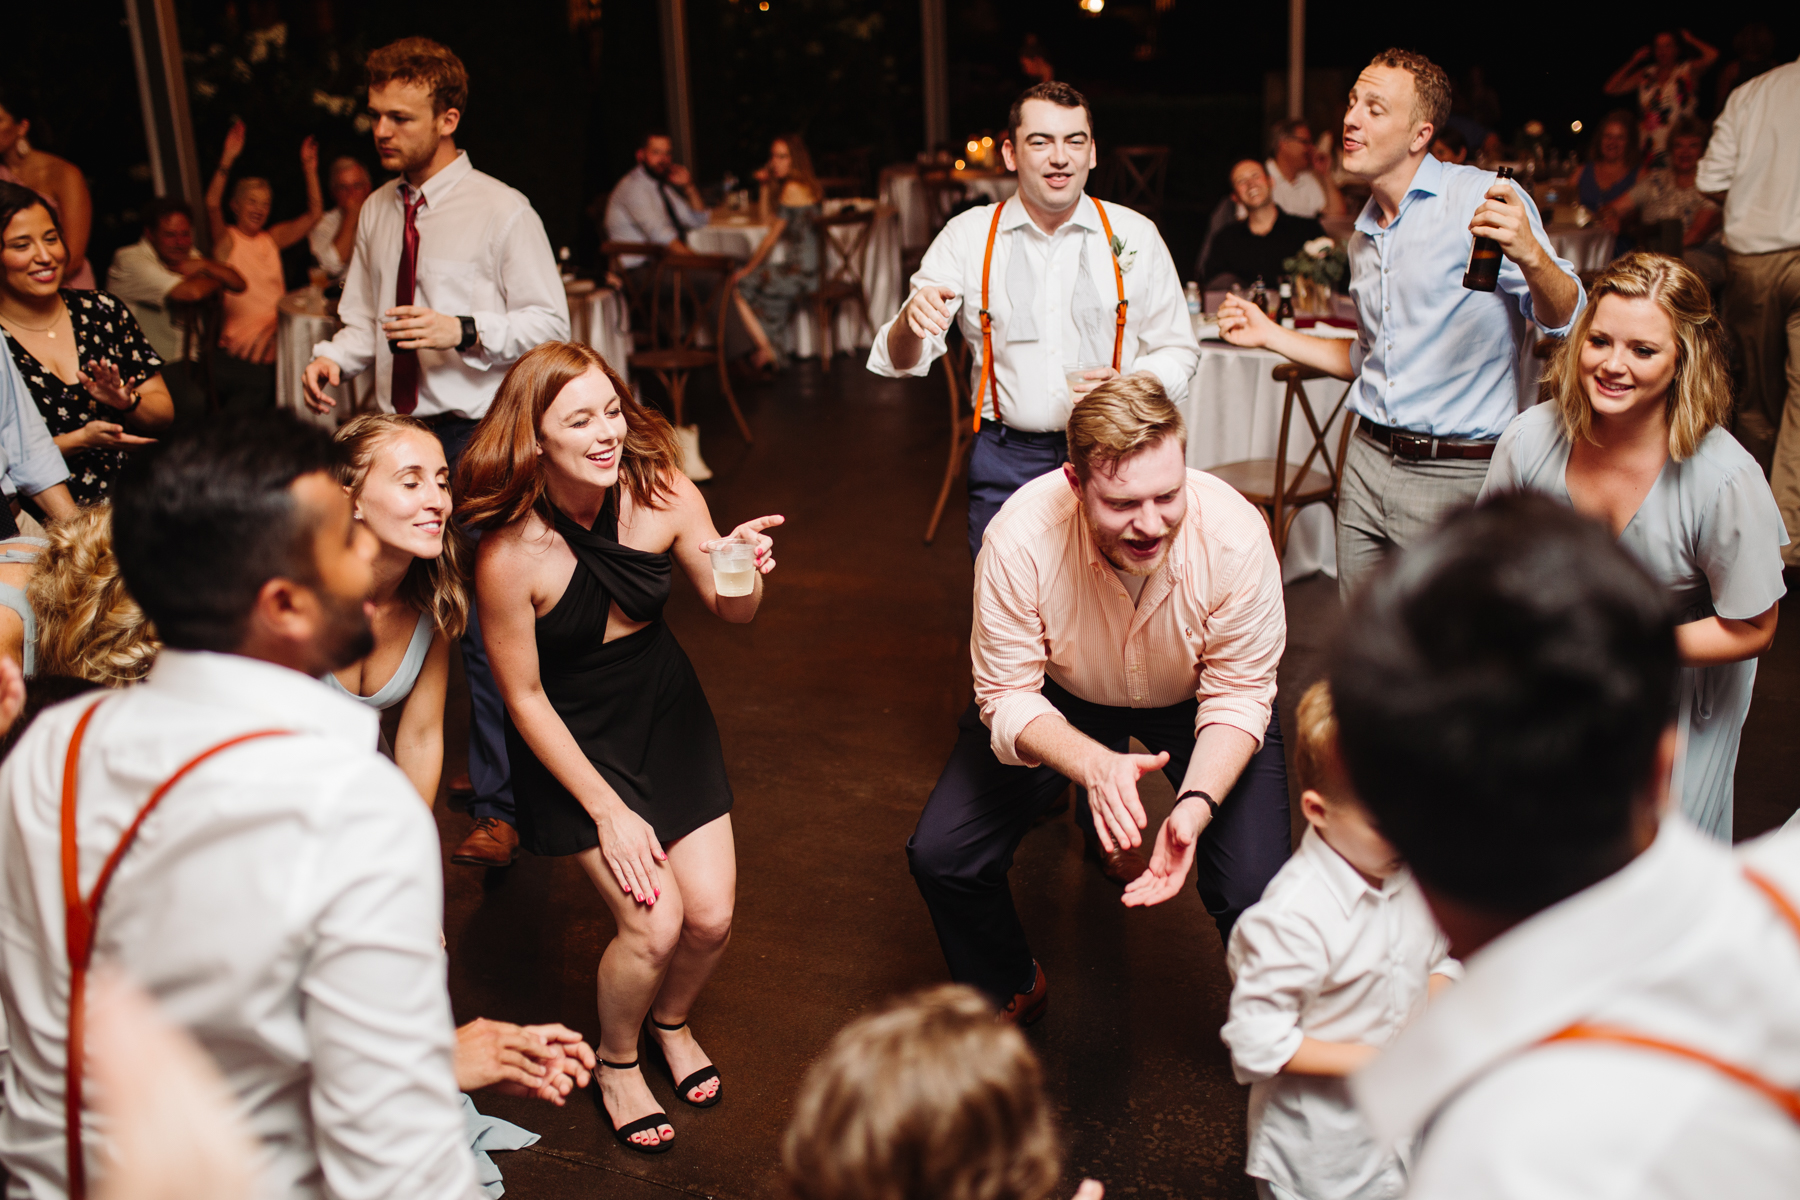 dance floor during the reception of a Sunny summer wedding at Dara's Garden in Knoxville, Tennessee